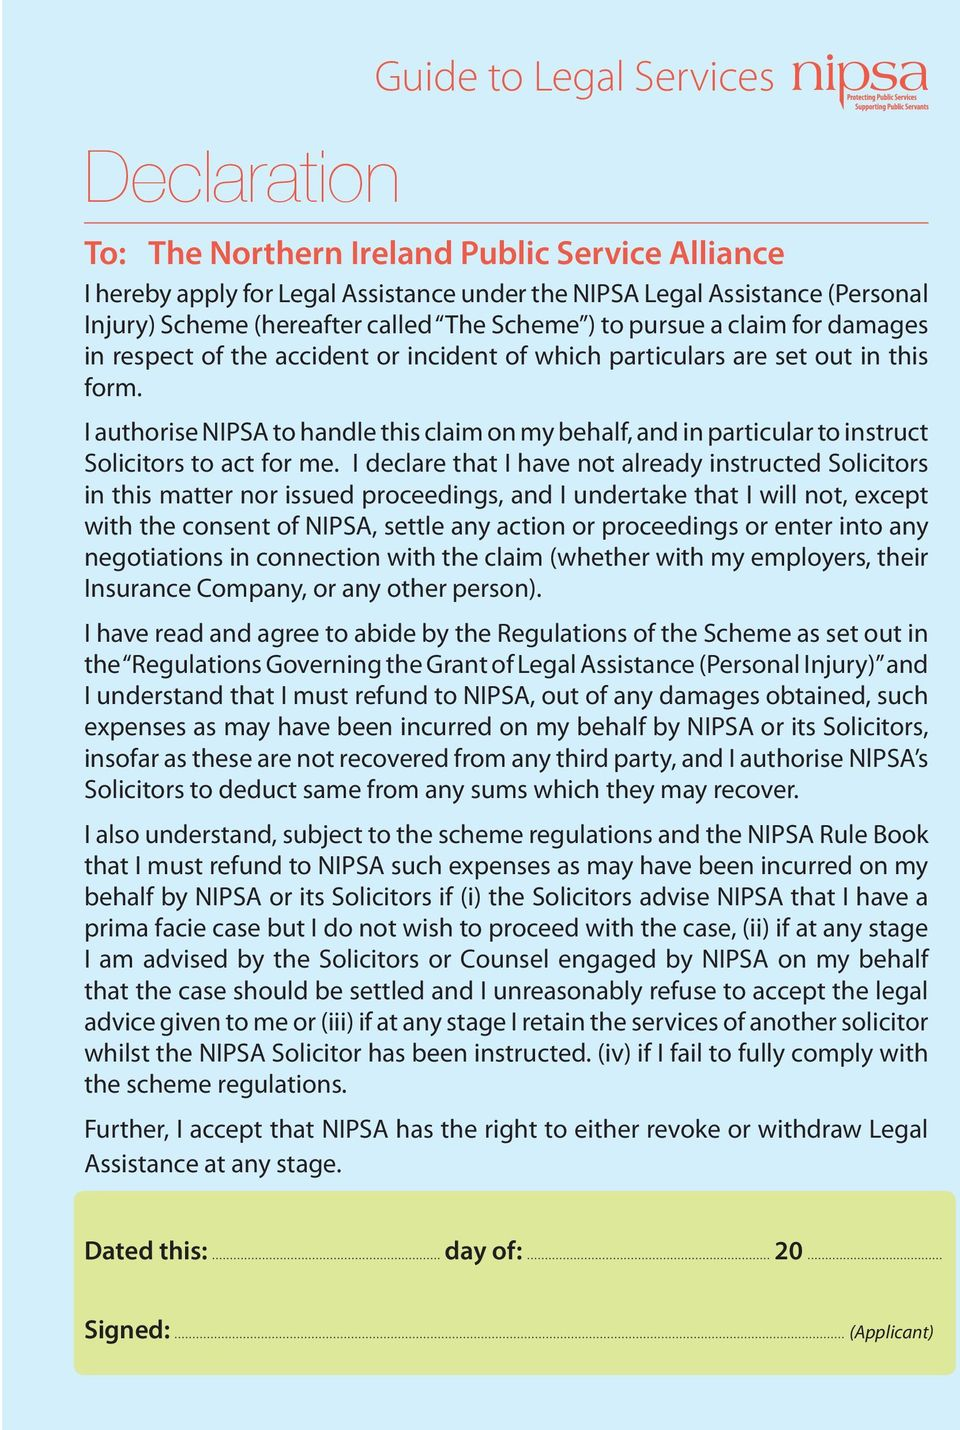 I authorise NIPSA to handle this claim on my behalf, and in particular to instruct Solicitors to act for me.